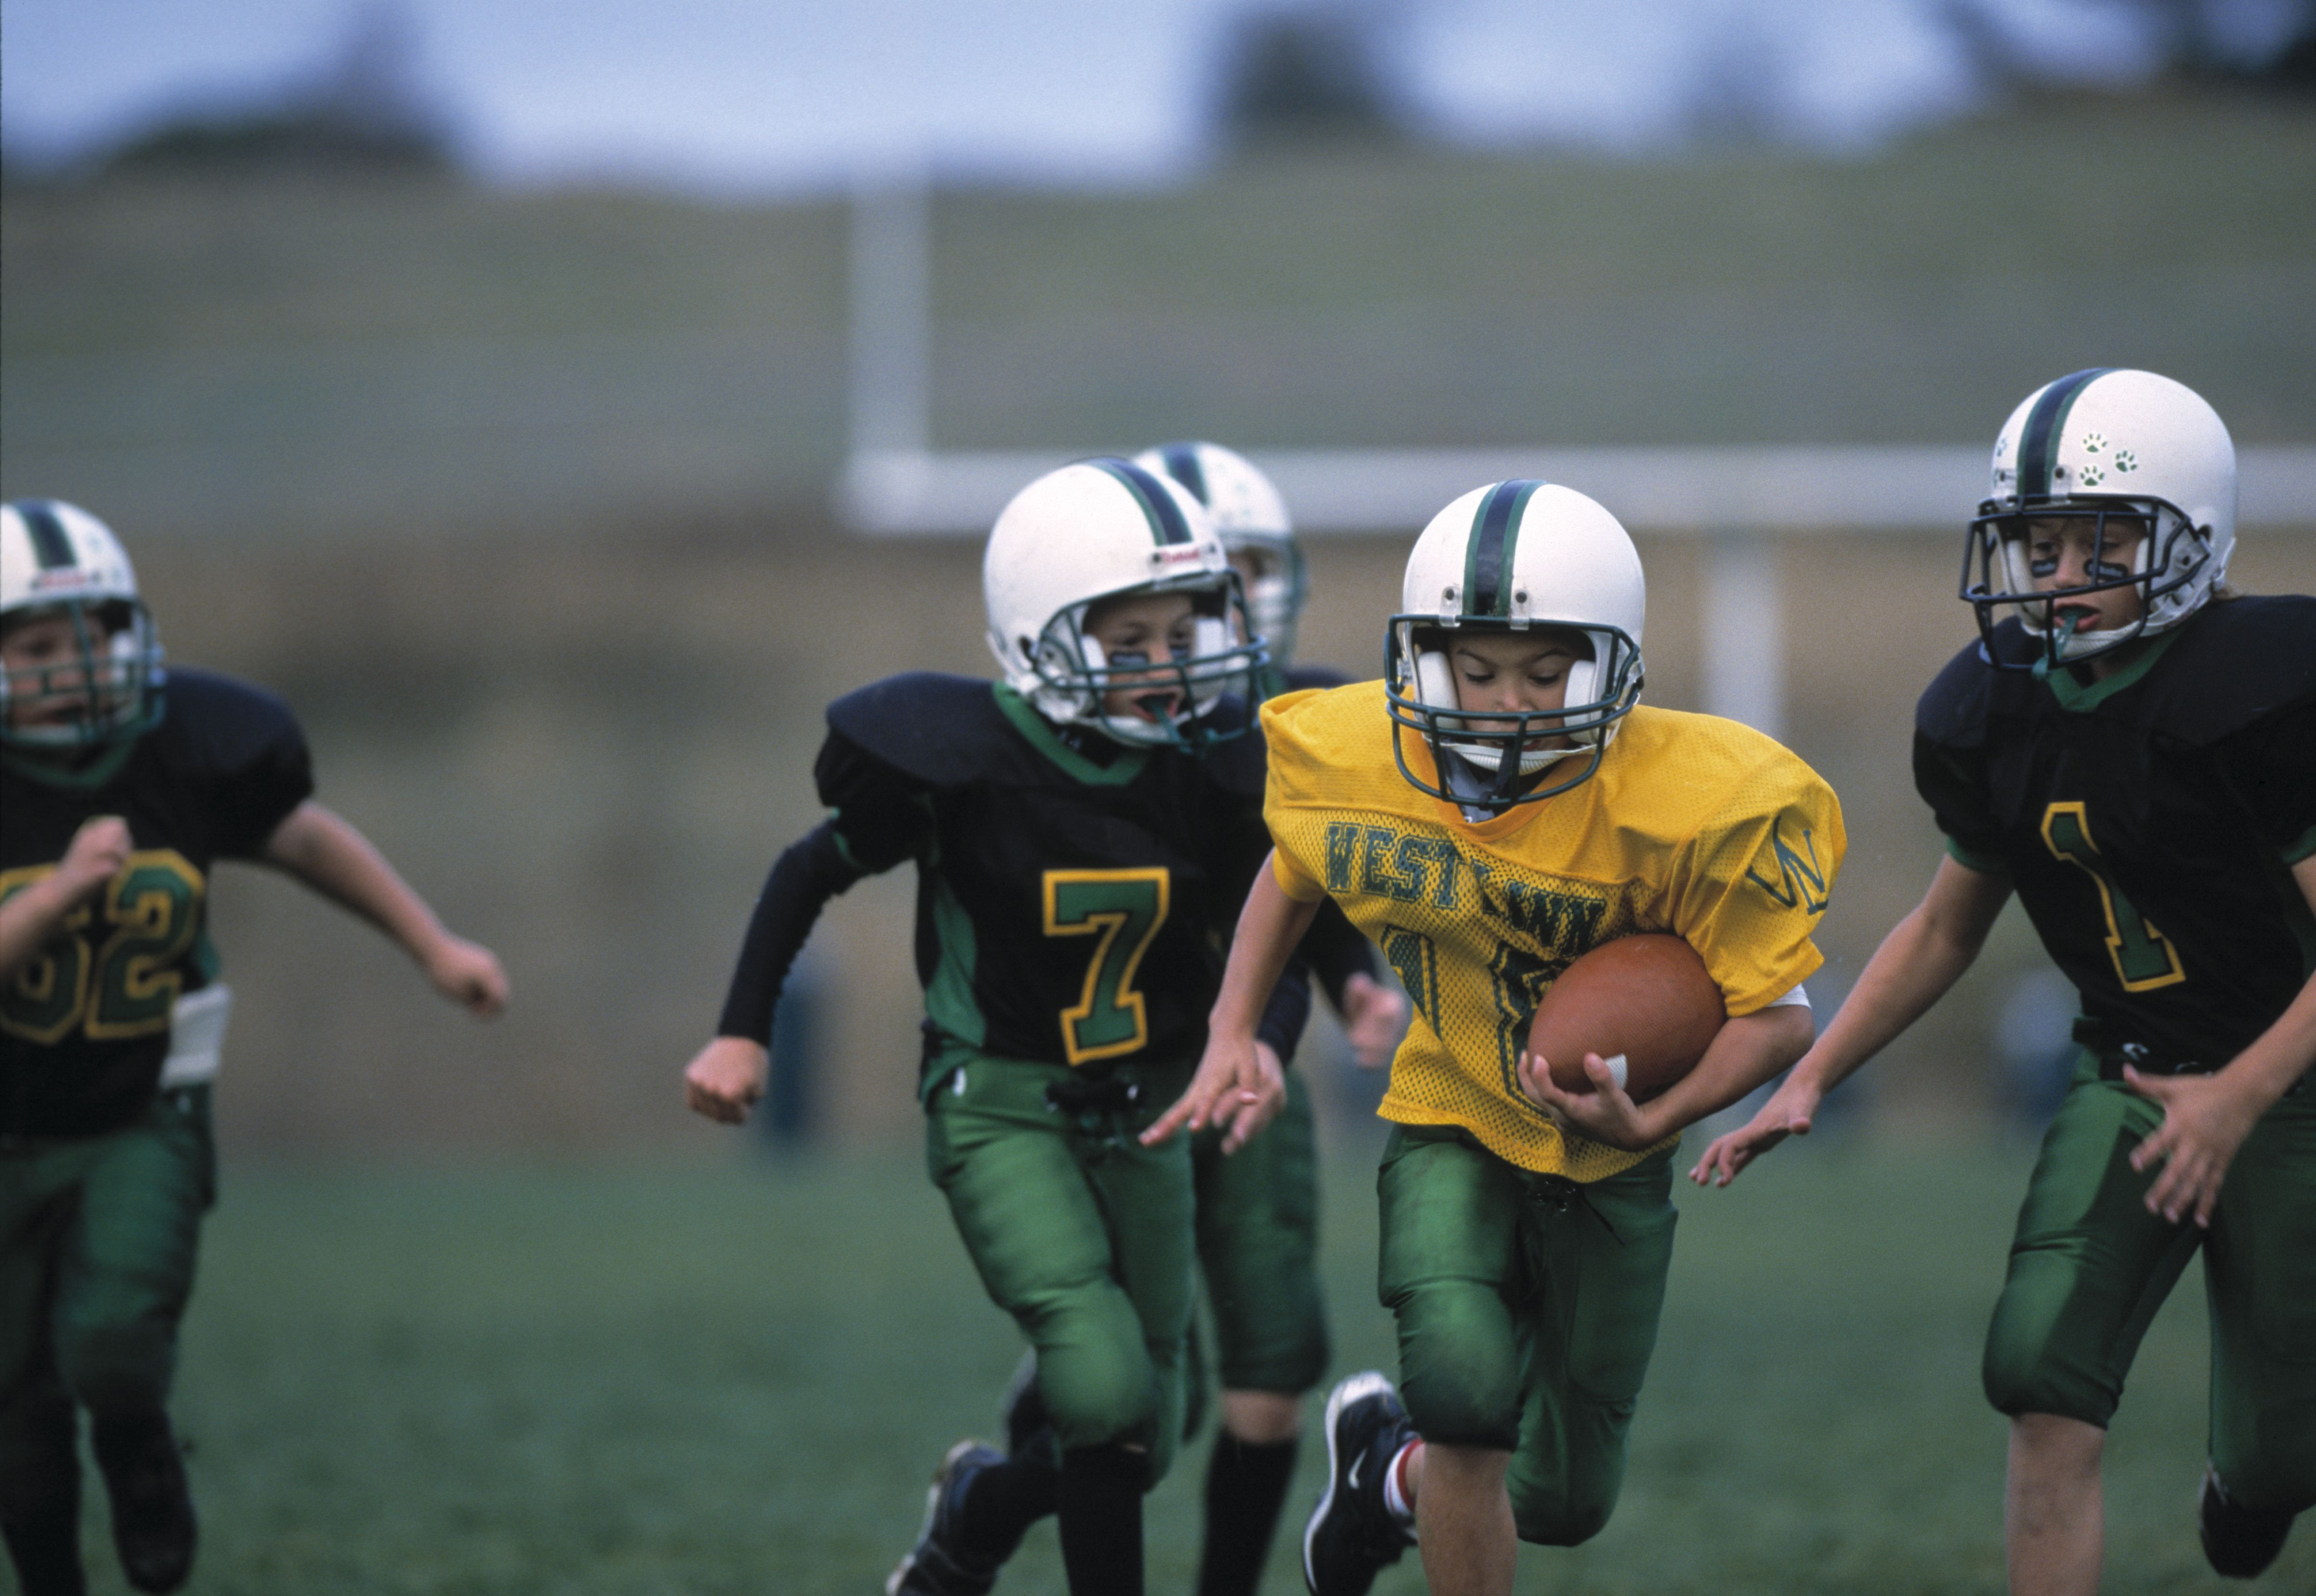 football watching party games for kids